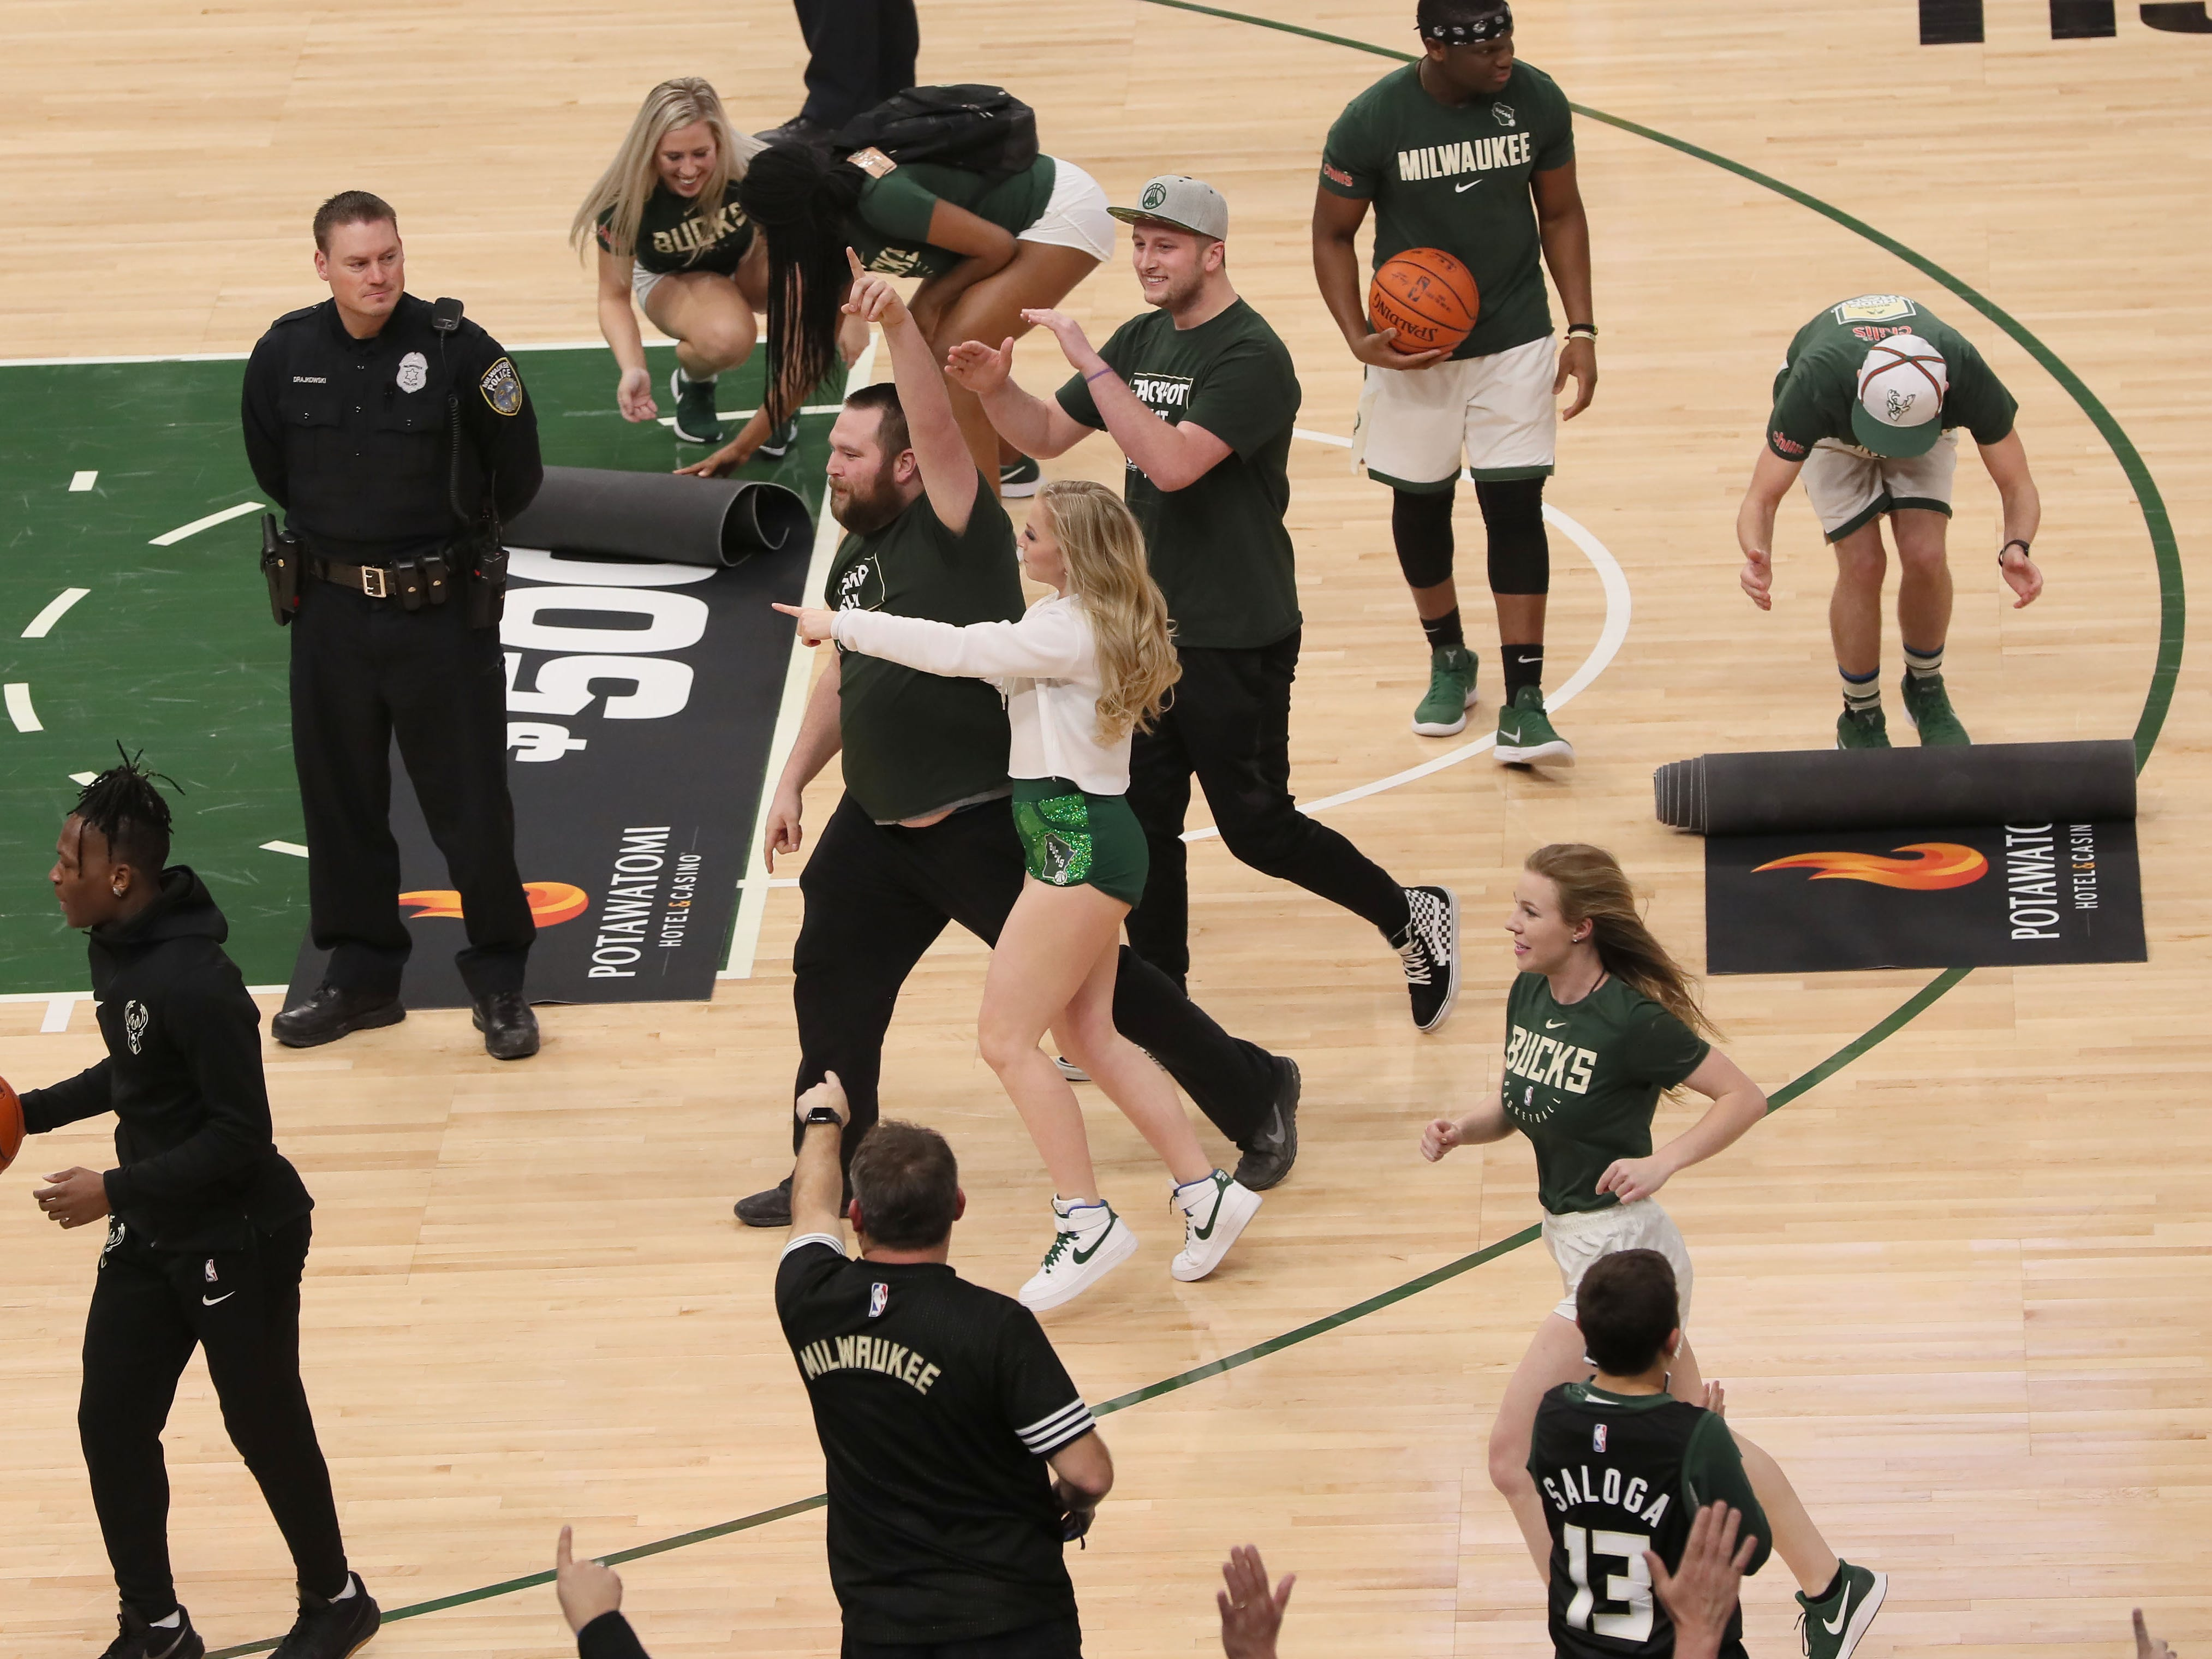 Surrounded by members of the Milwaukee Bucks Dancers, a jubilant Jimmy Appleton raises his finger after sinking a half-court shot and winning $5,000  in the Potawatomi Hotel & Casino Jackpot Shot contest during the game Feb. 6.